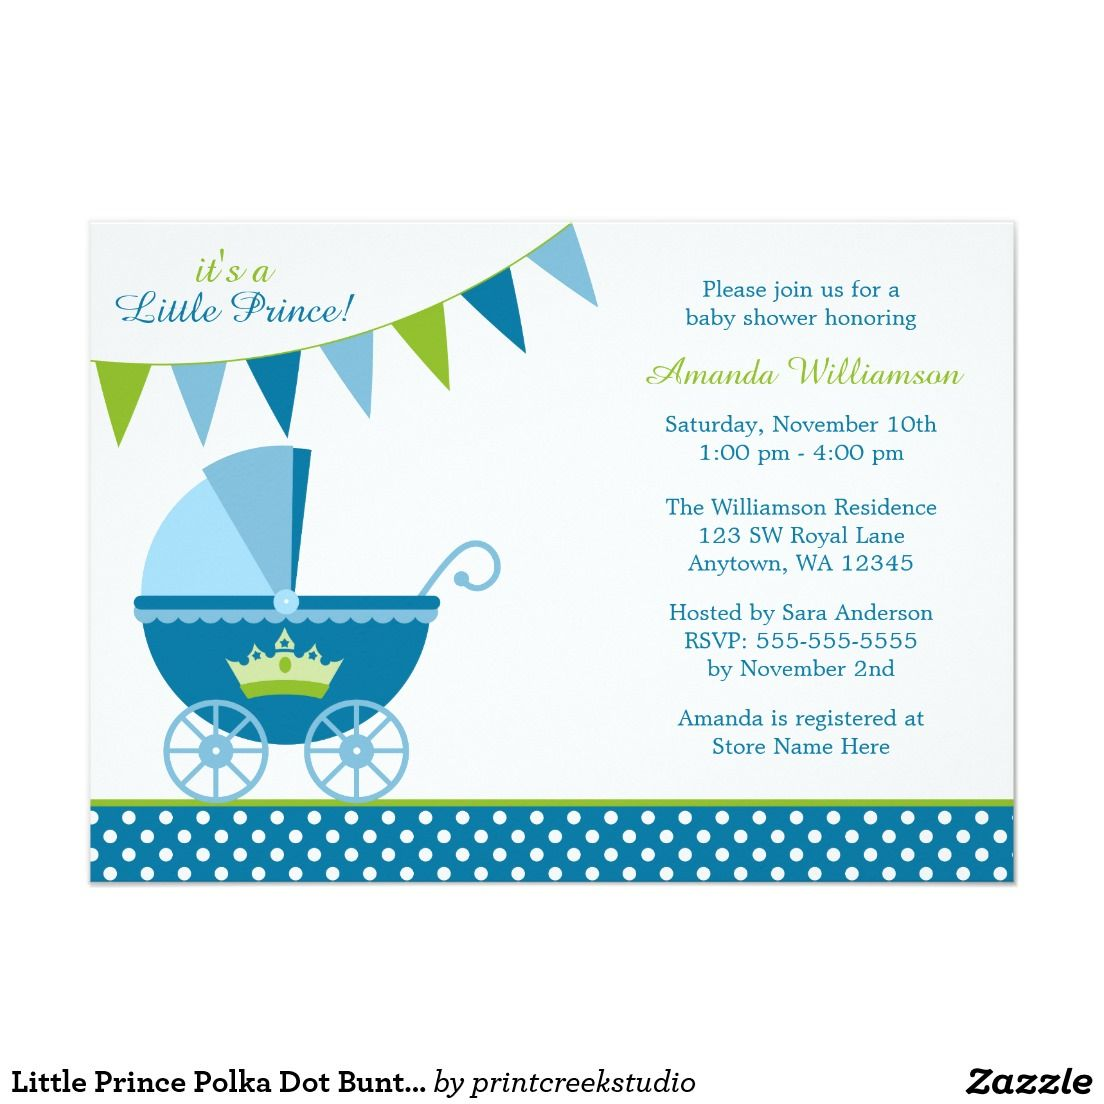 Little prince baby shower invitations. A cute blue and green design ...